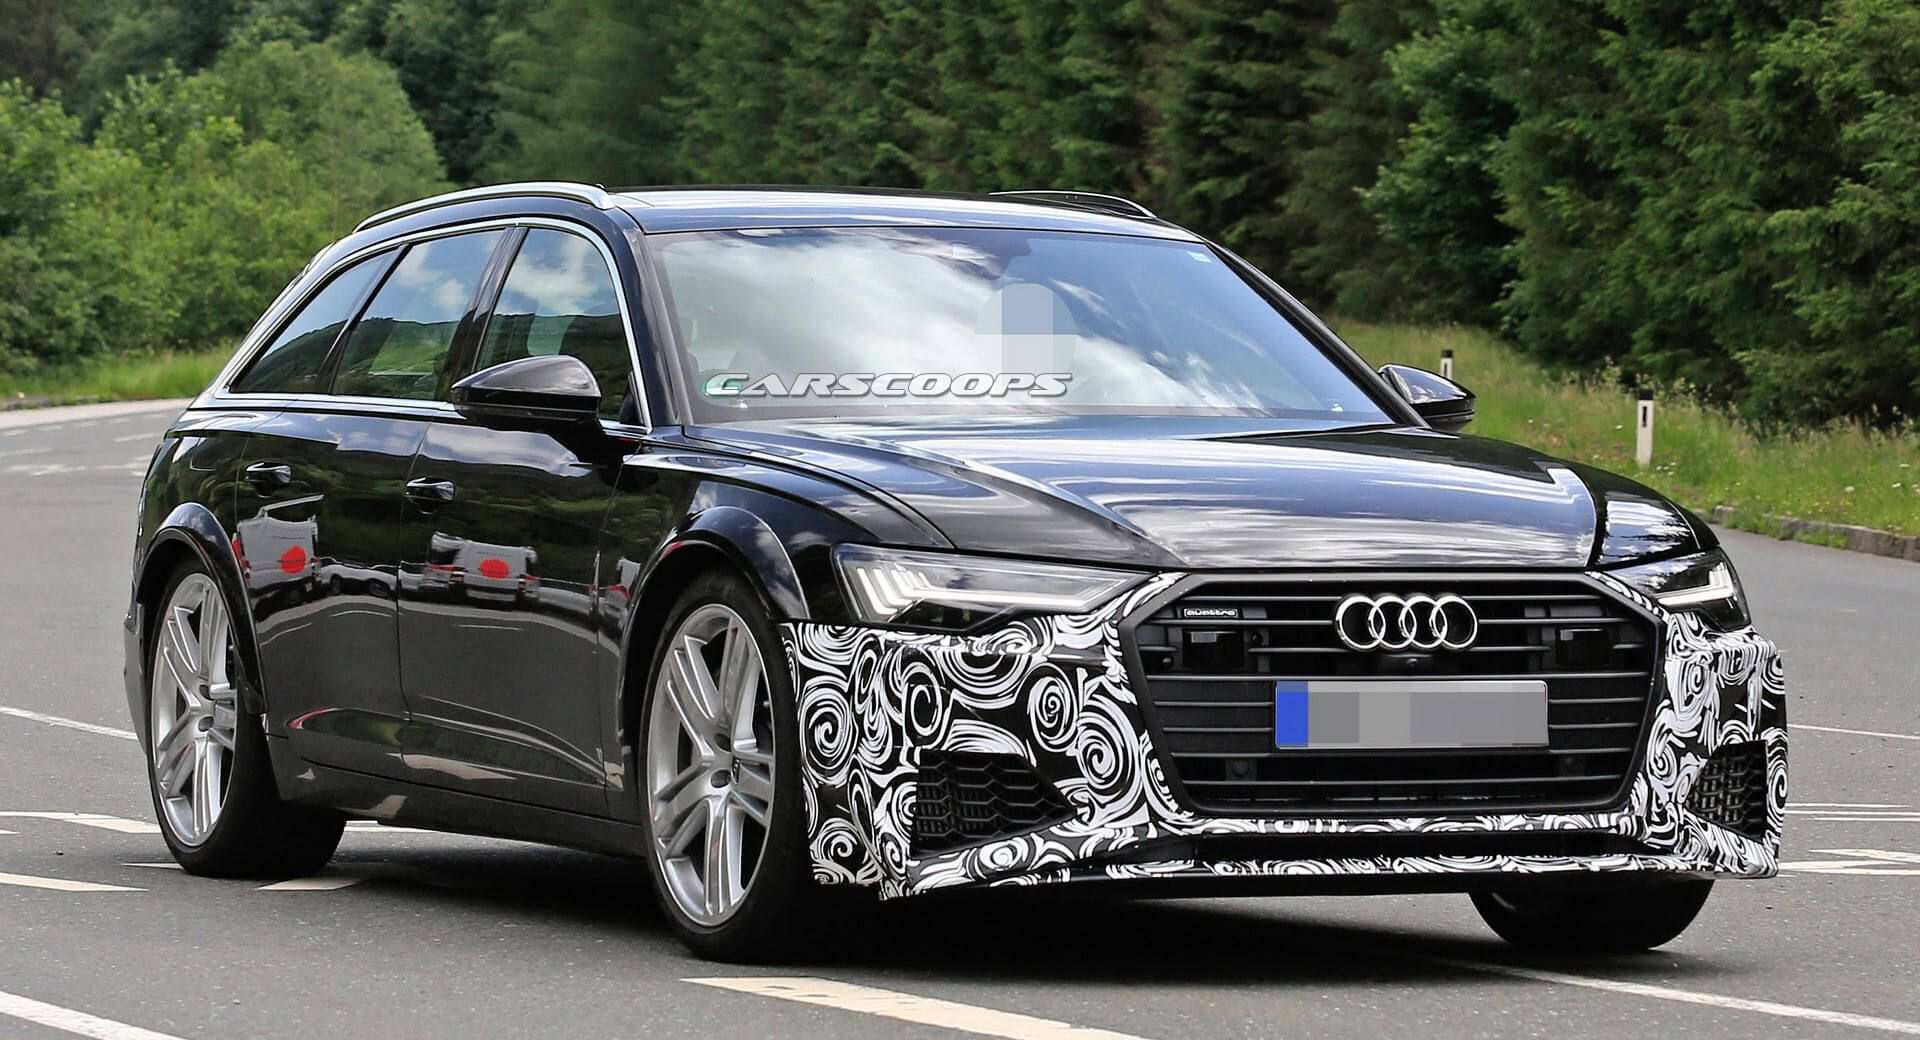 48 The Best 2020 Audi A6 Comes New Concept